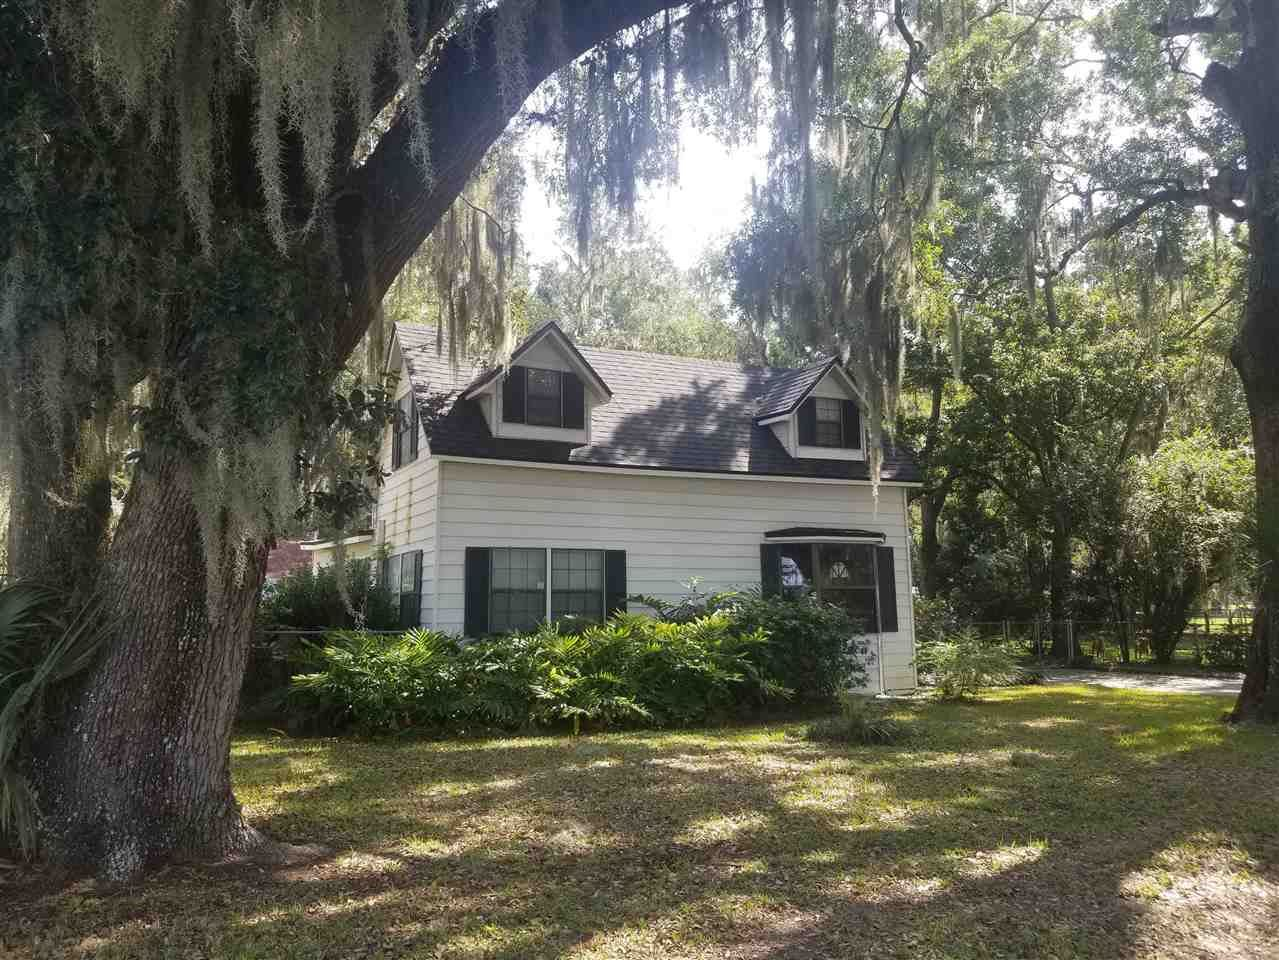 1100 S Washington Street, Perry, FL 32348 - MLS#: 324728